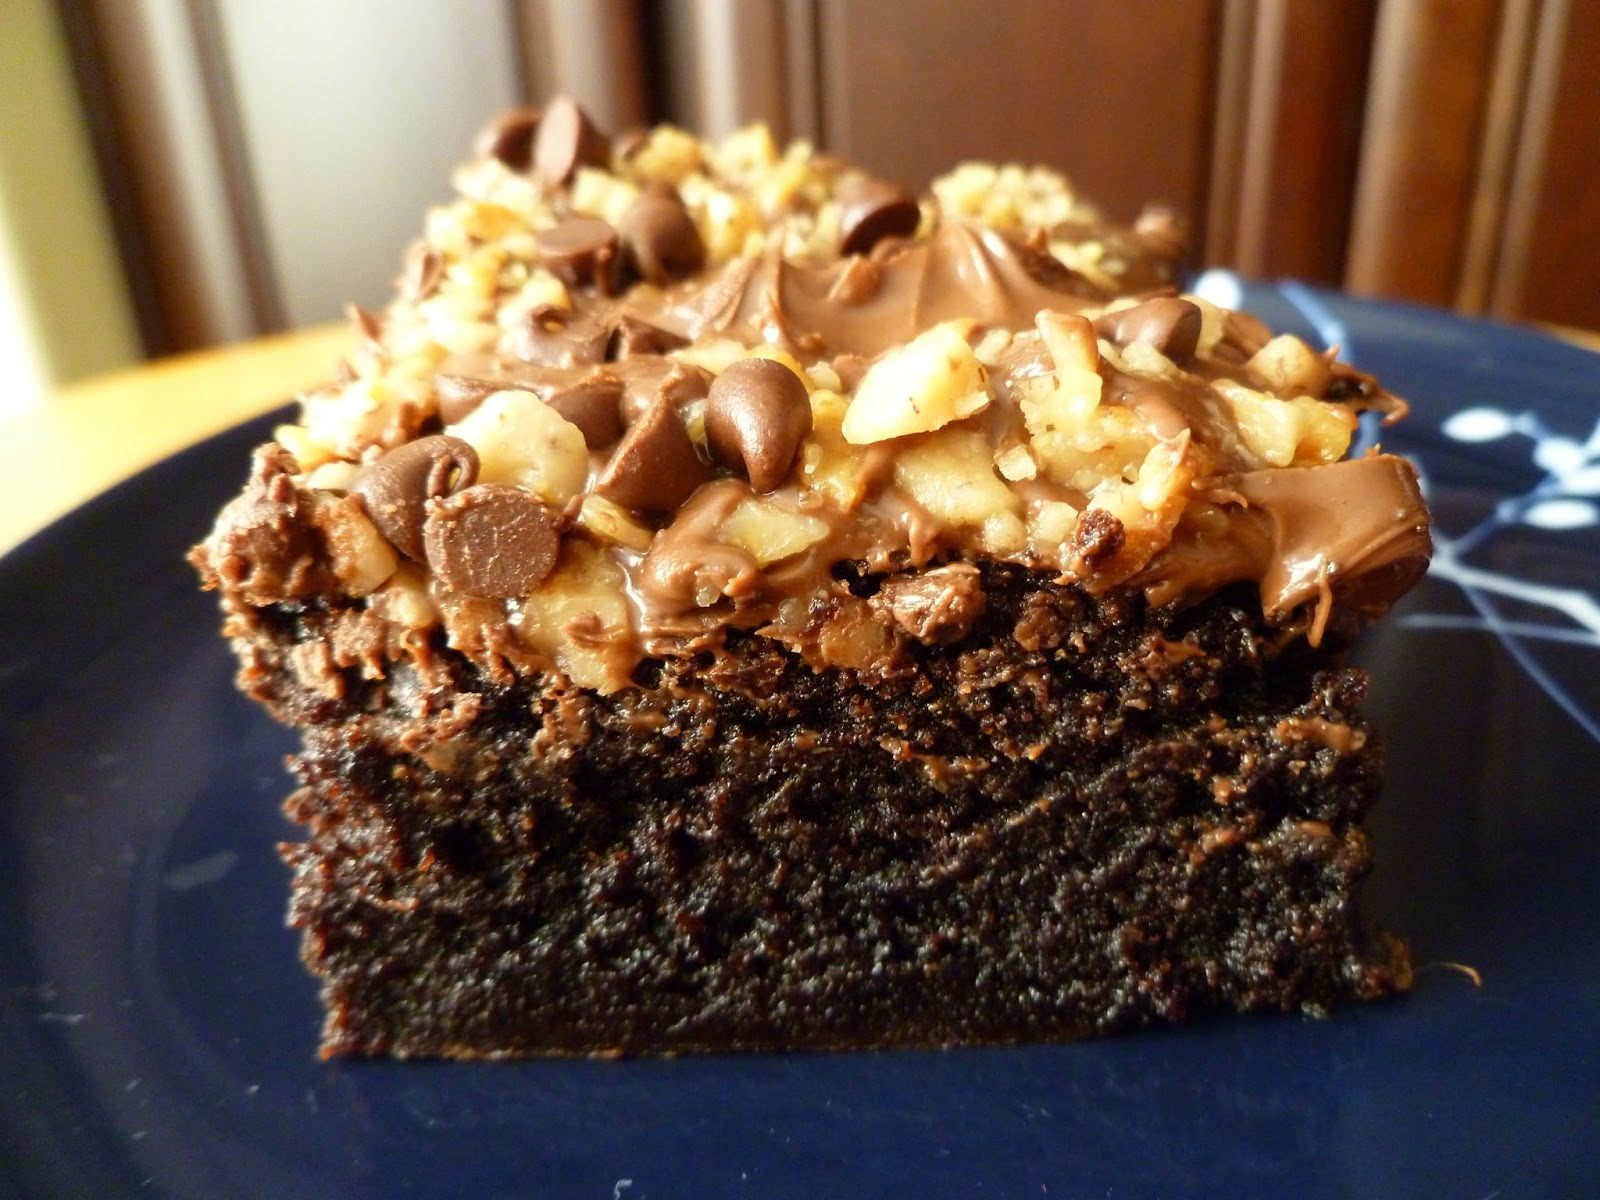 Nutella Topped Brownies The Pastry Chefs Baking Salted Caramel Swirl Brownies Topped